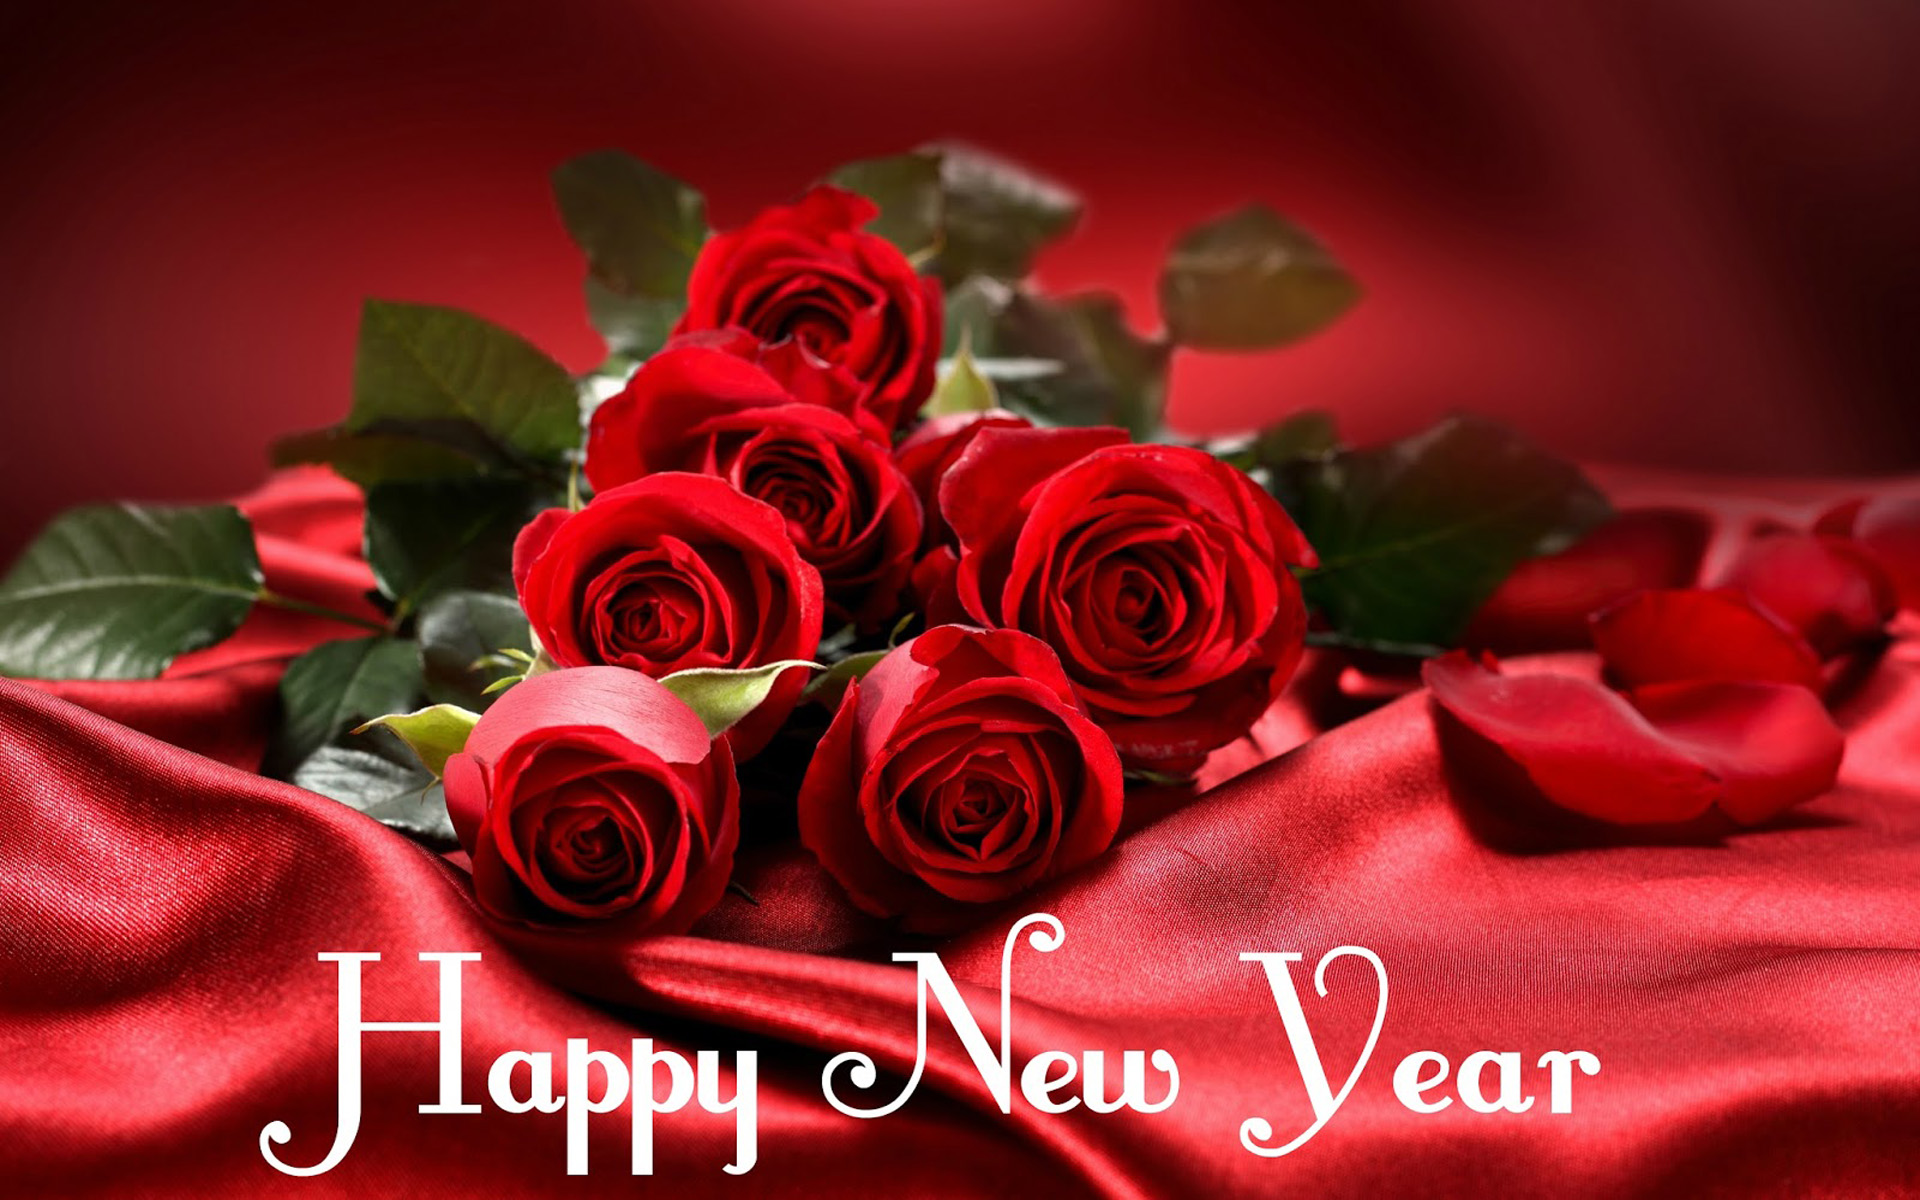 Happy New Year Red Roses Flower Images 2020 Greeting Card 1920x1200